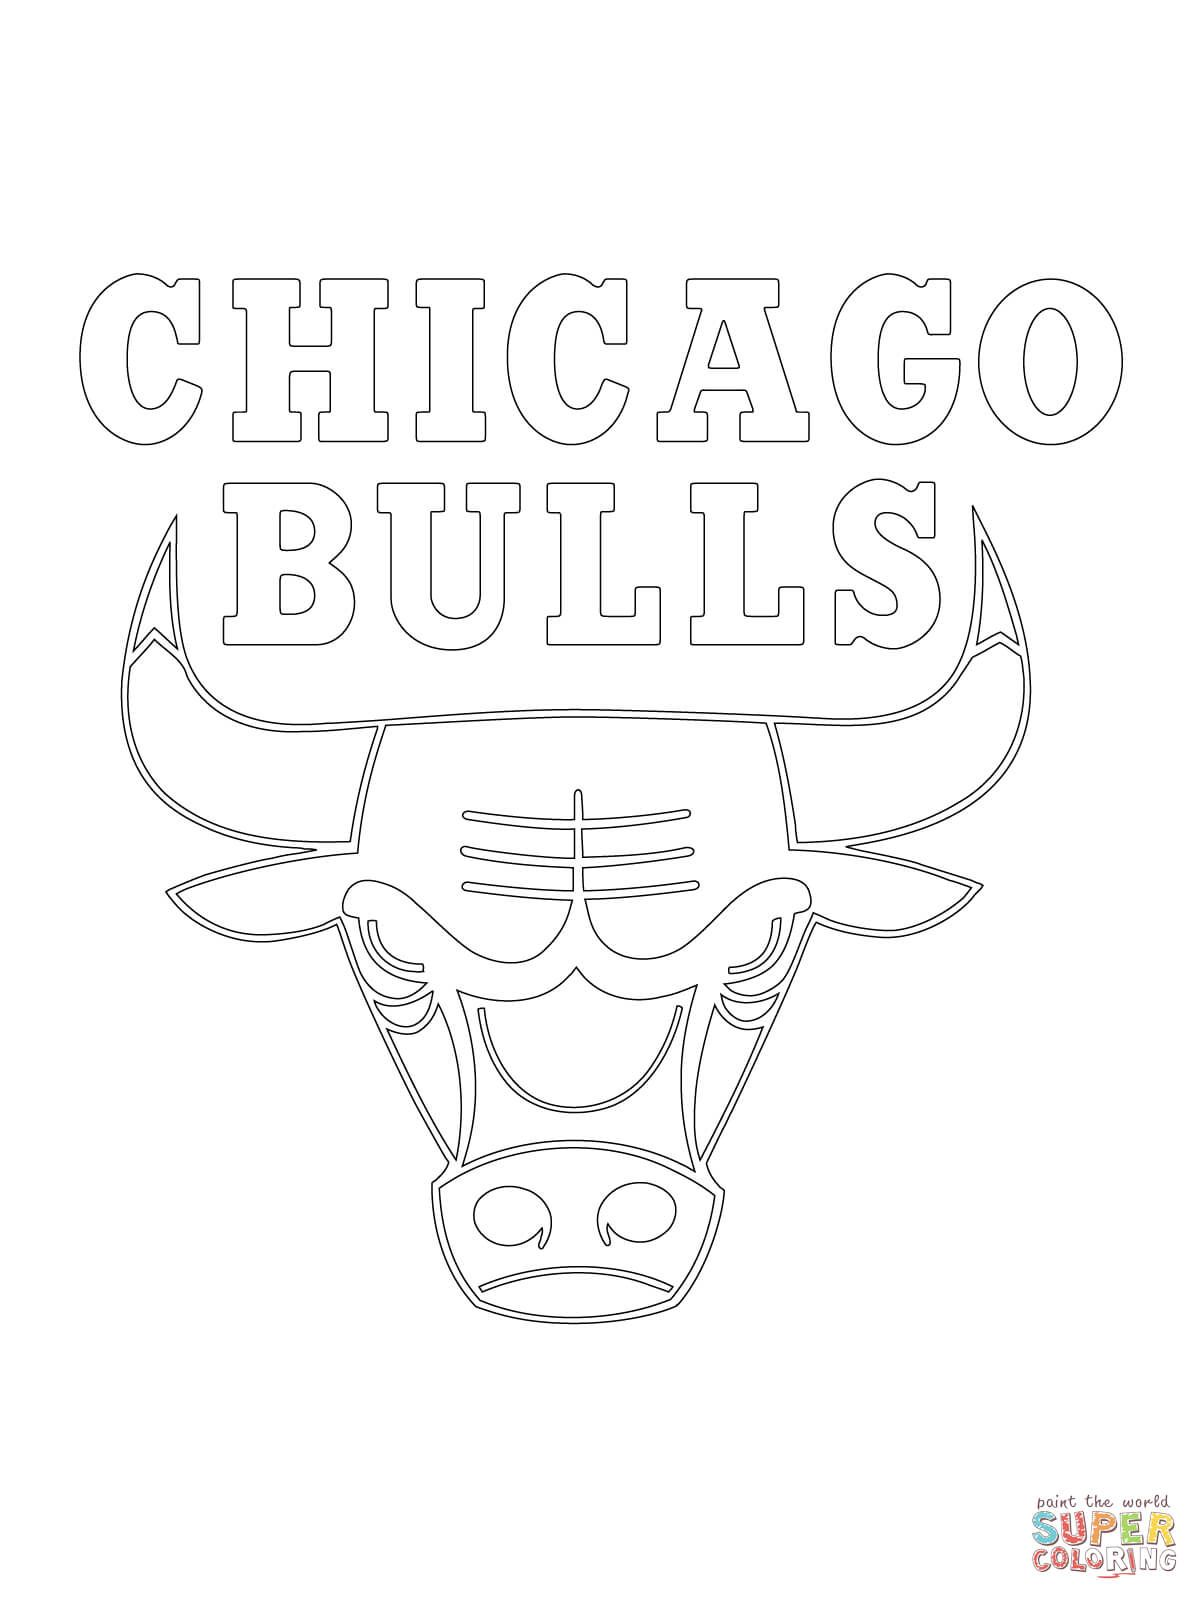 chicago bulls coloring pages chicago bulls logo coloring page free printable coloring coloring chicago pages bulls